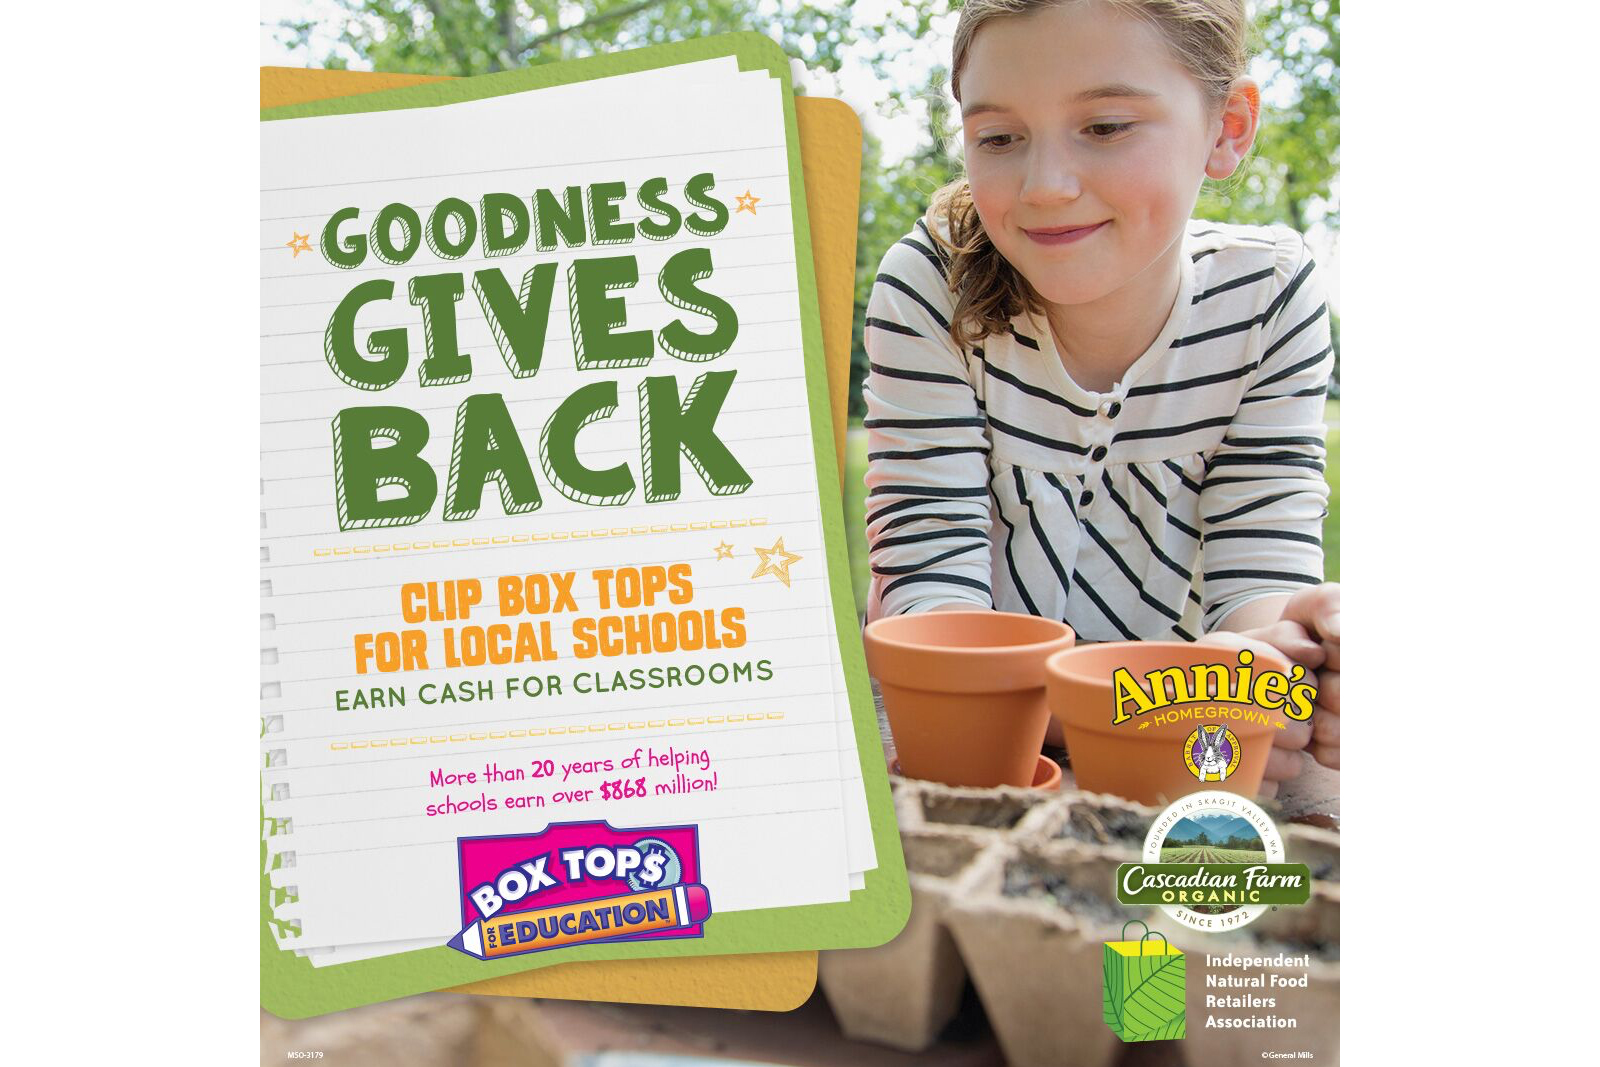 Clip Box Tops for Local Schools